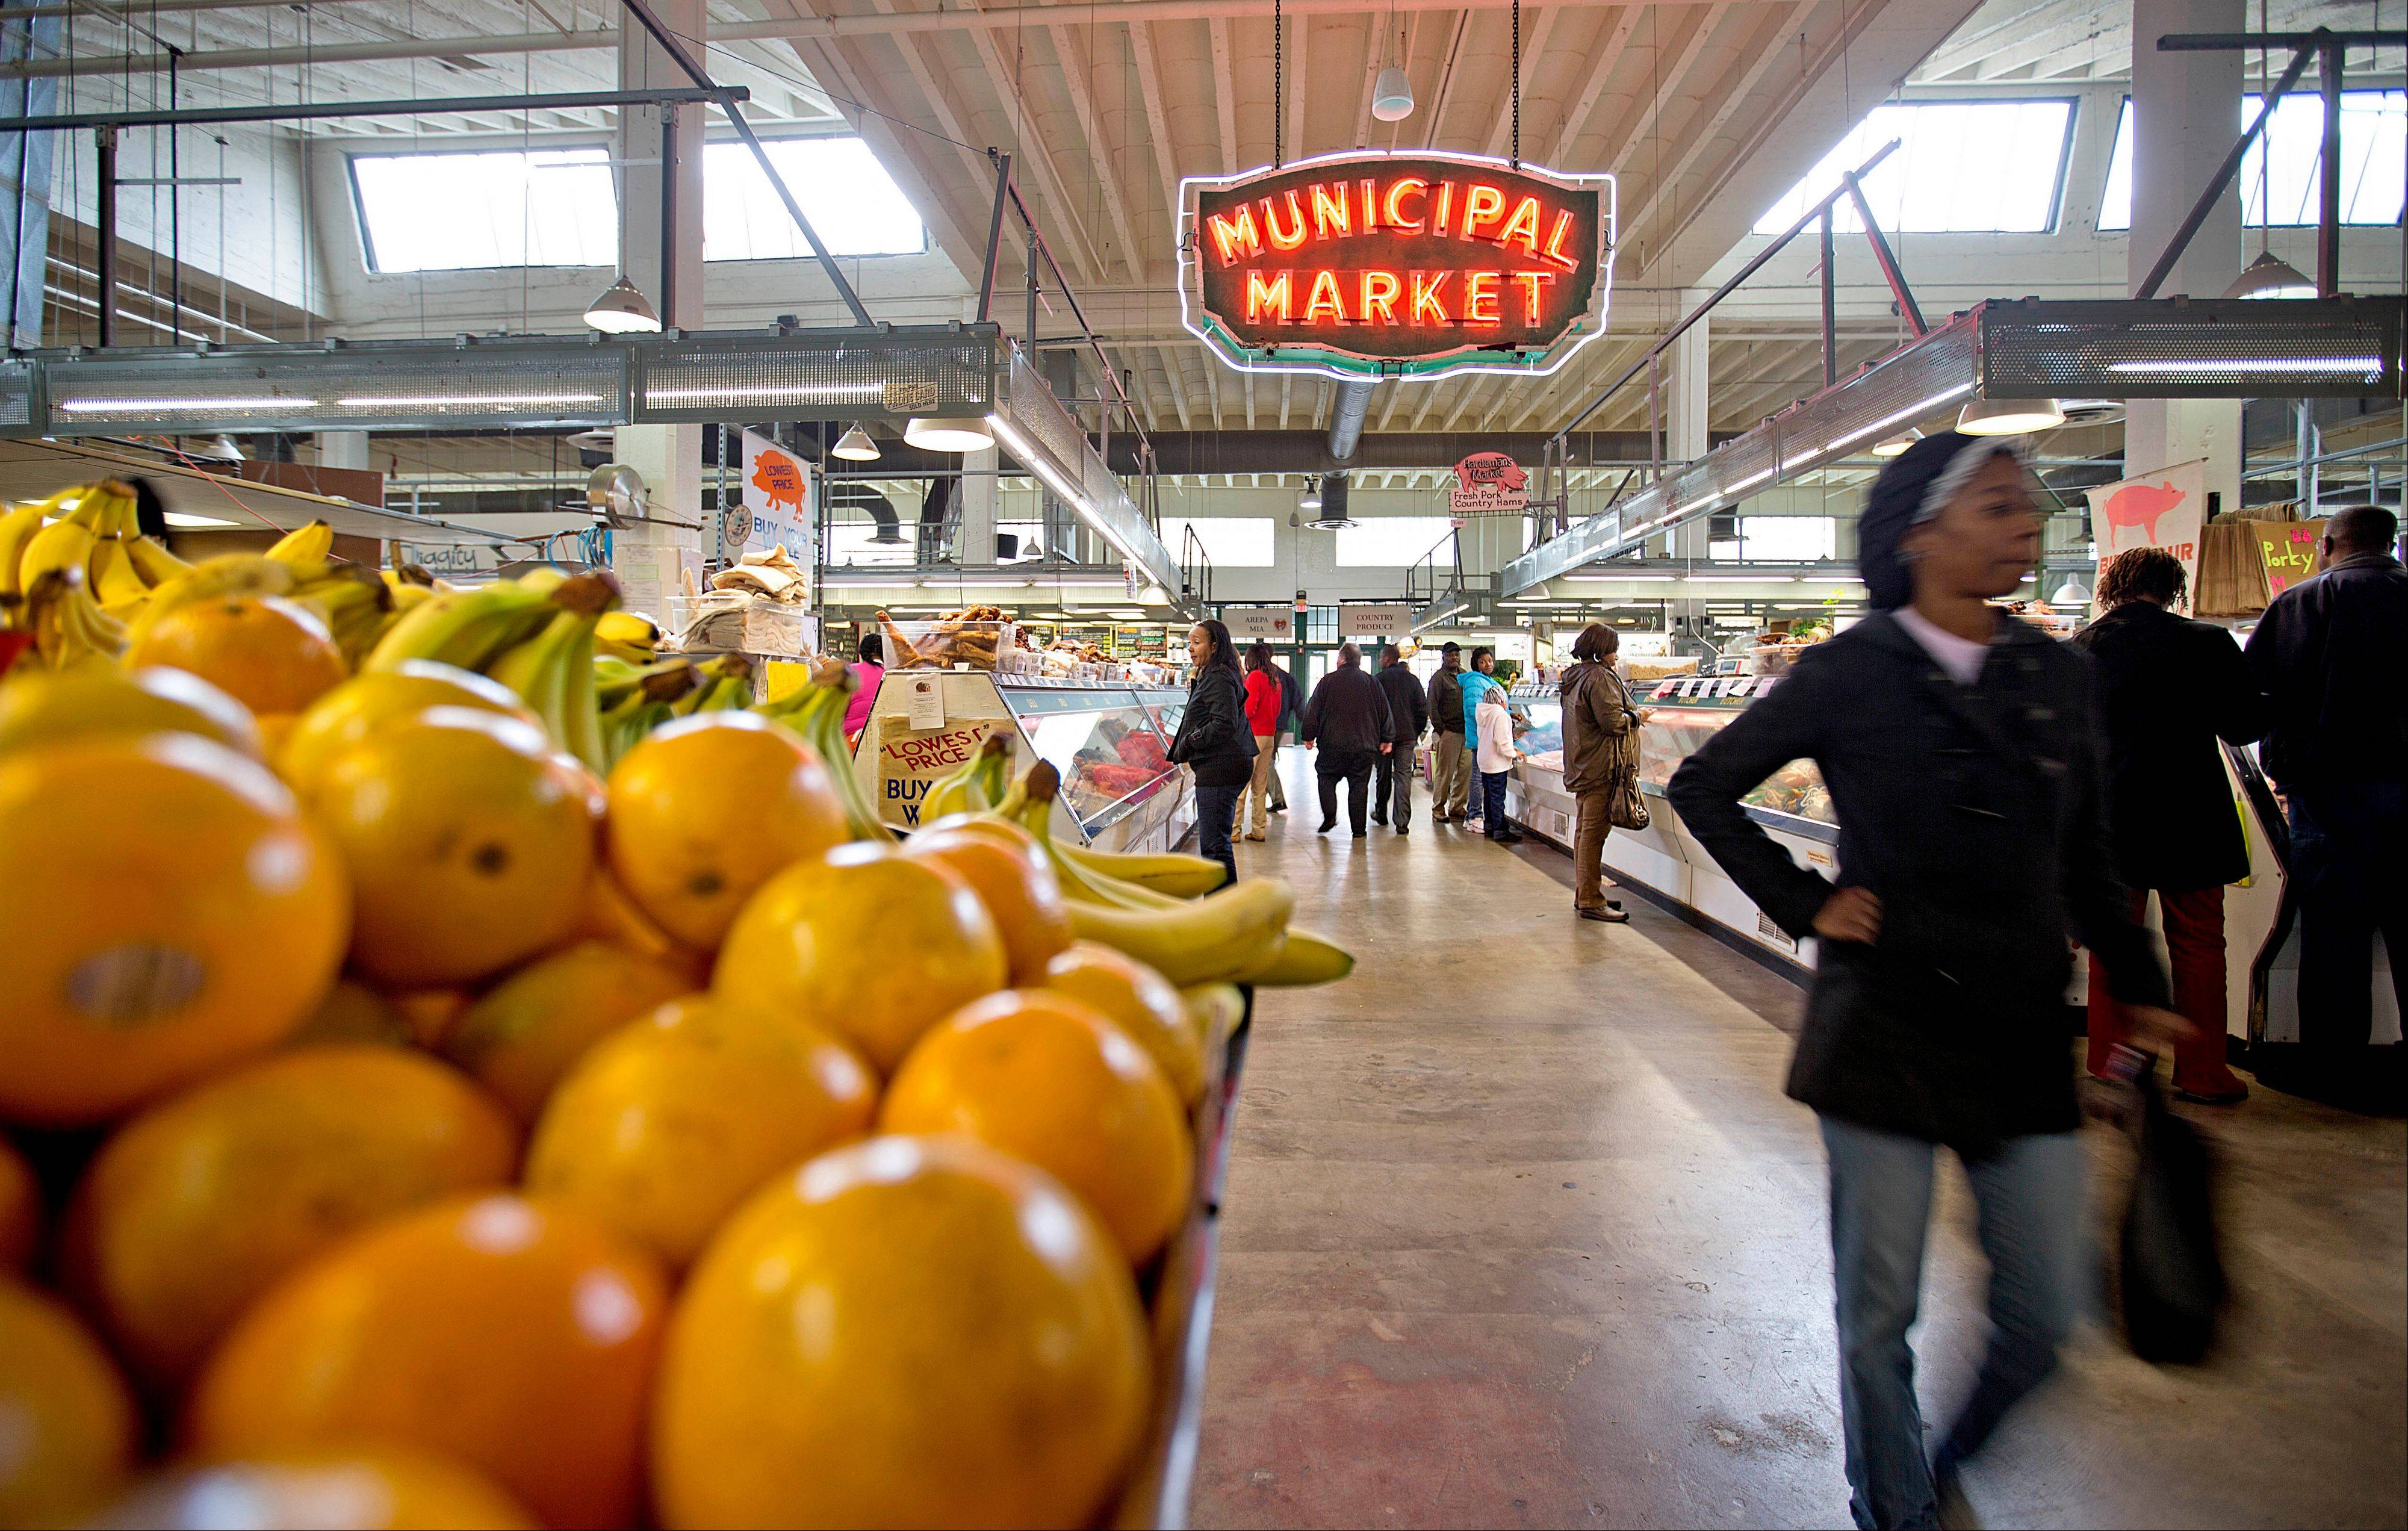 Shoppers pass through the Sweet Auburn Curb Market in Atlanta, which is now an urban farmers market that provides a lively atmosphere for browsing and grabbing lunch.